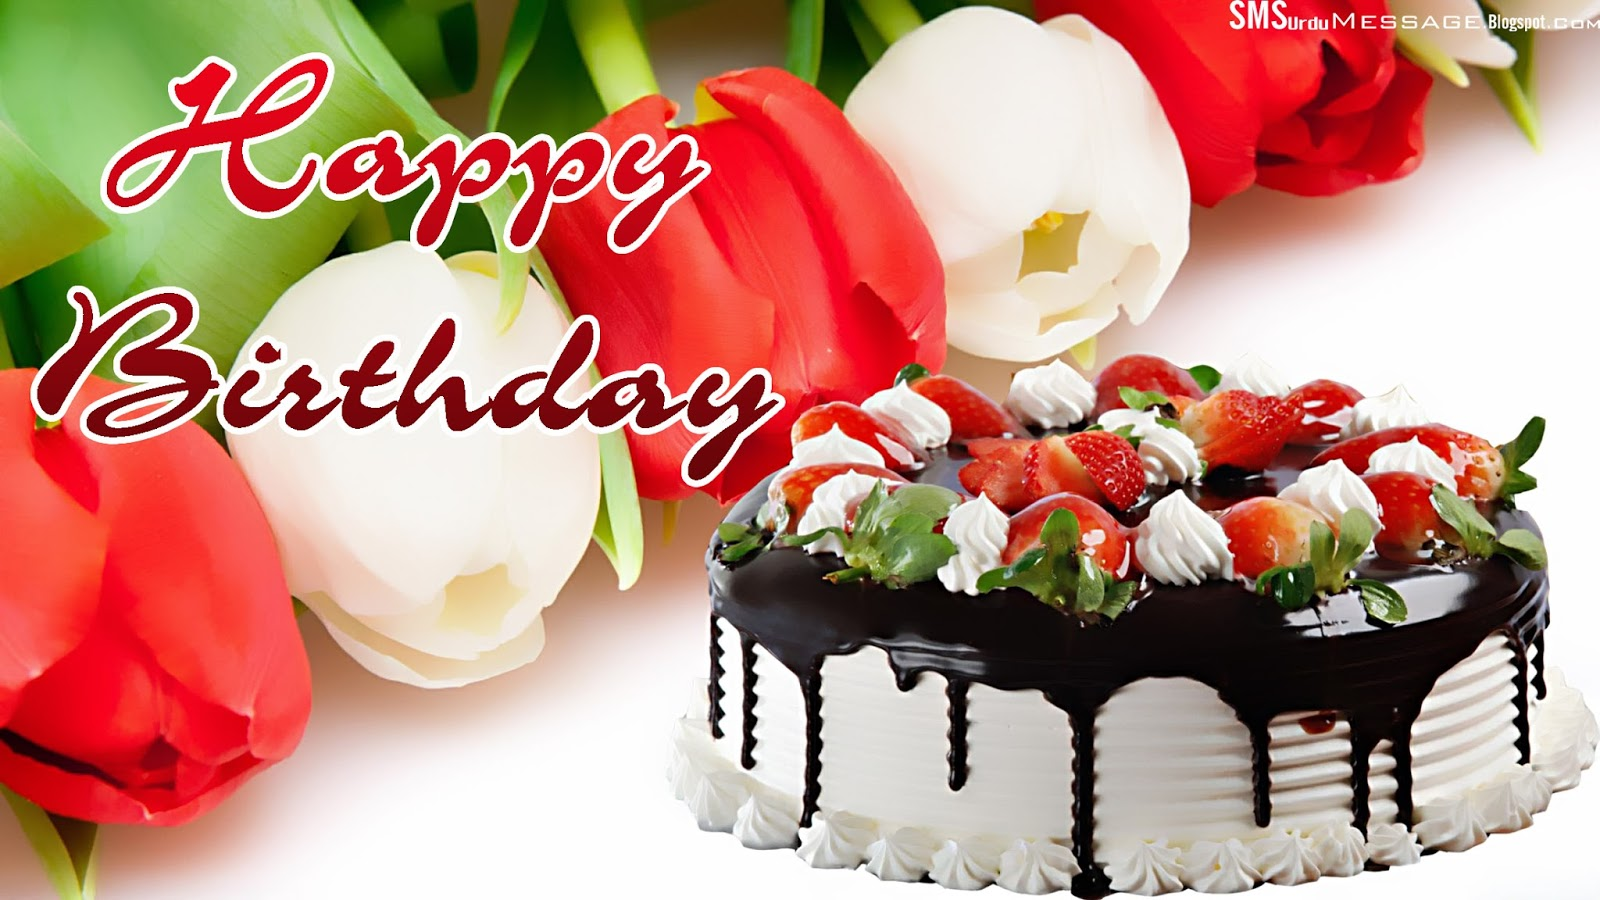 Wallpaper download birthday cake - Updated